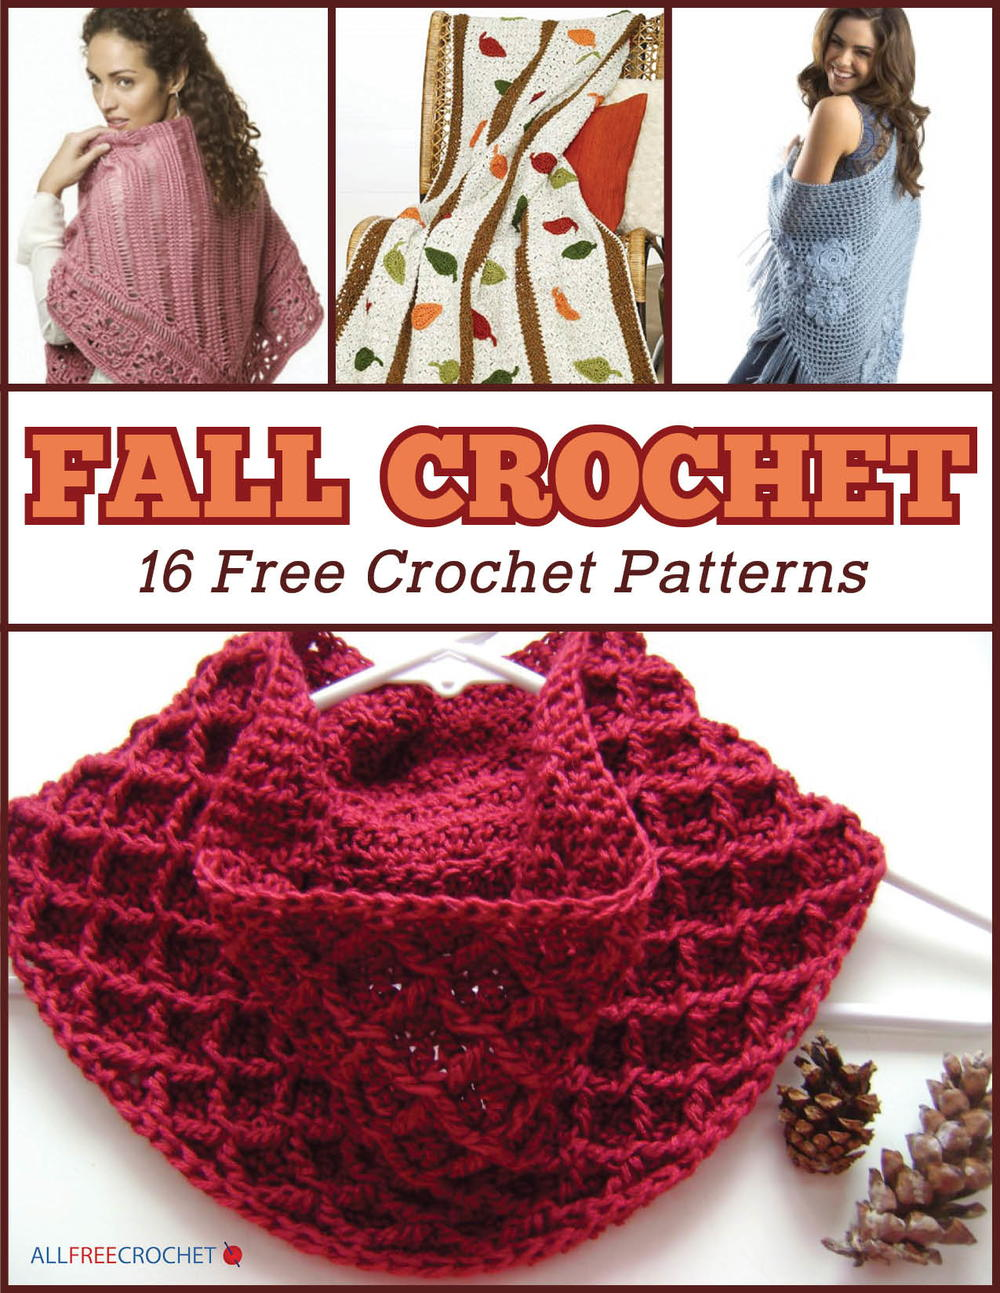 Fall Crochet: 16 Free Crochet Patterns eBook AllFreeCrochet.com